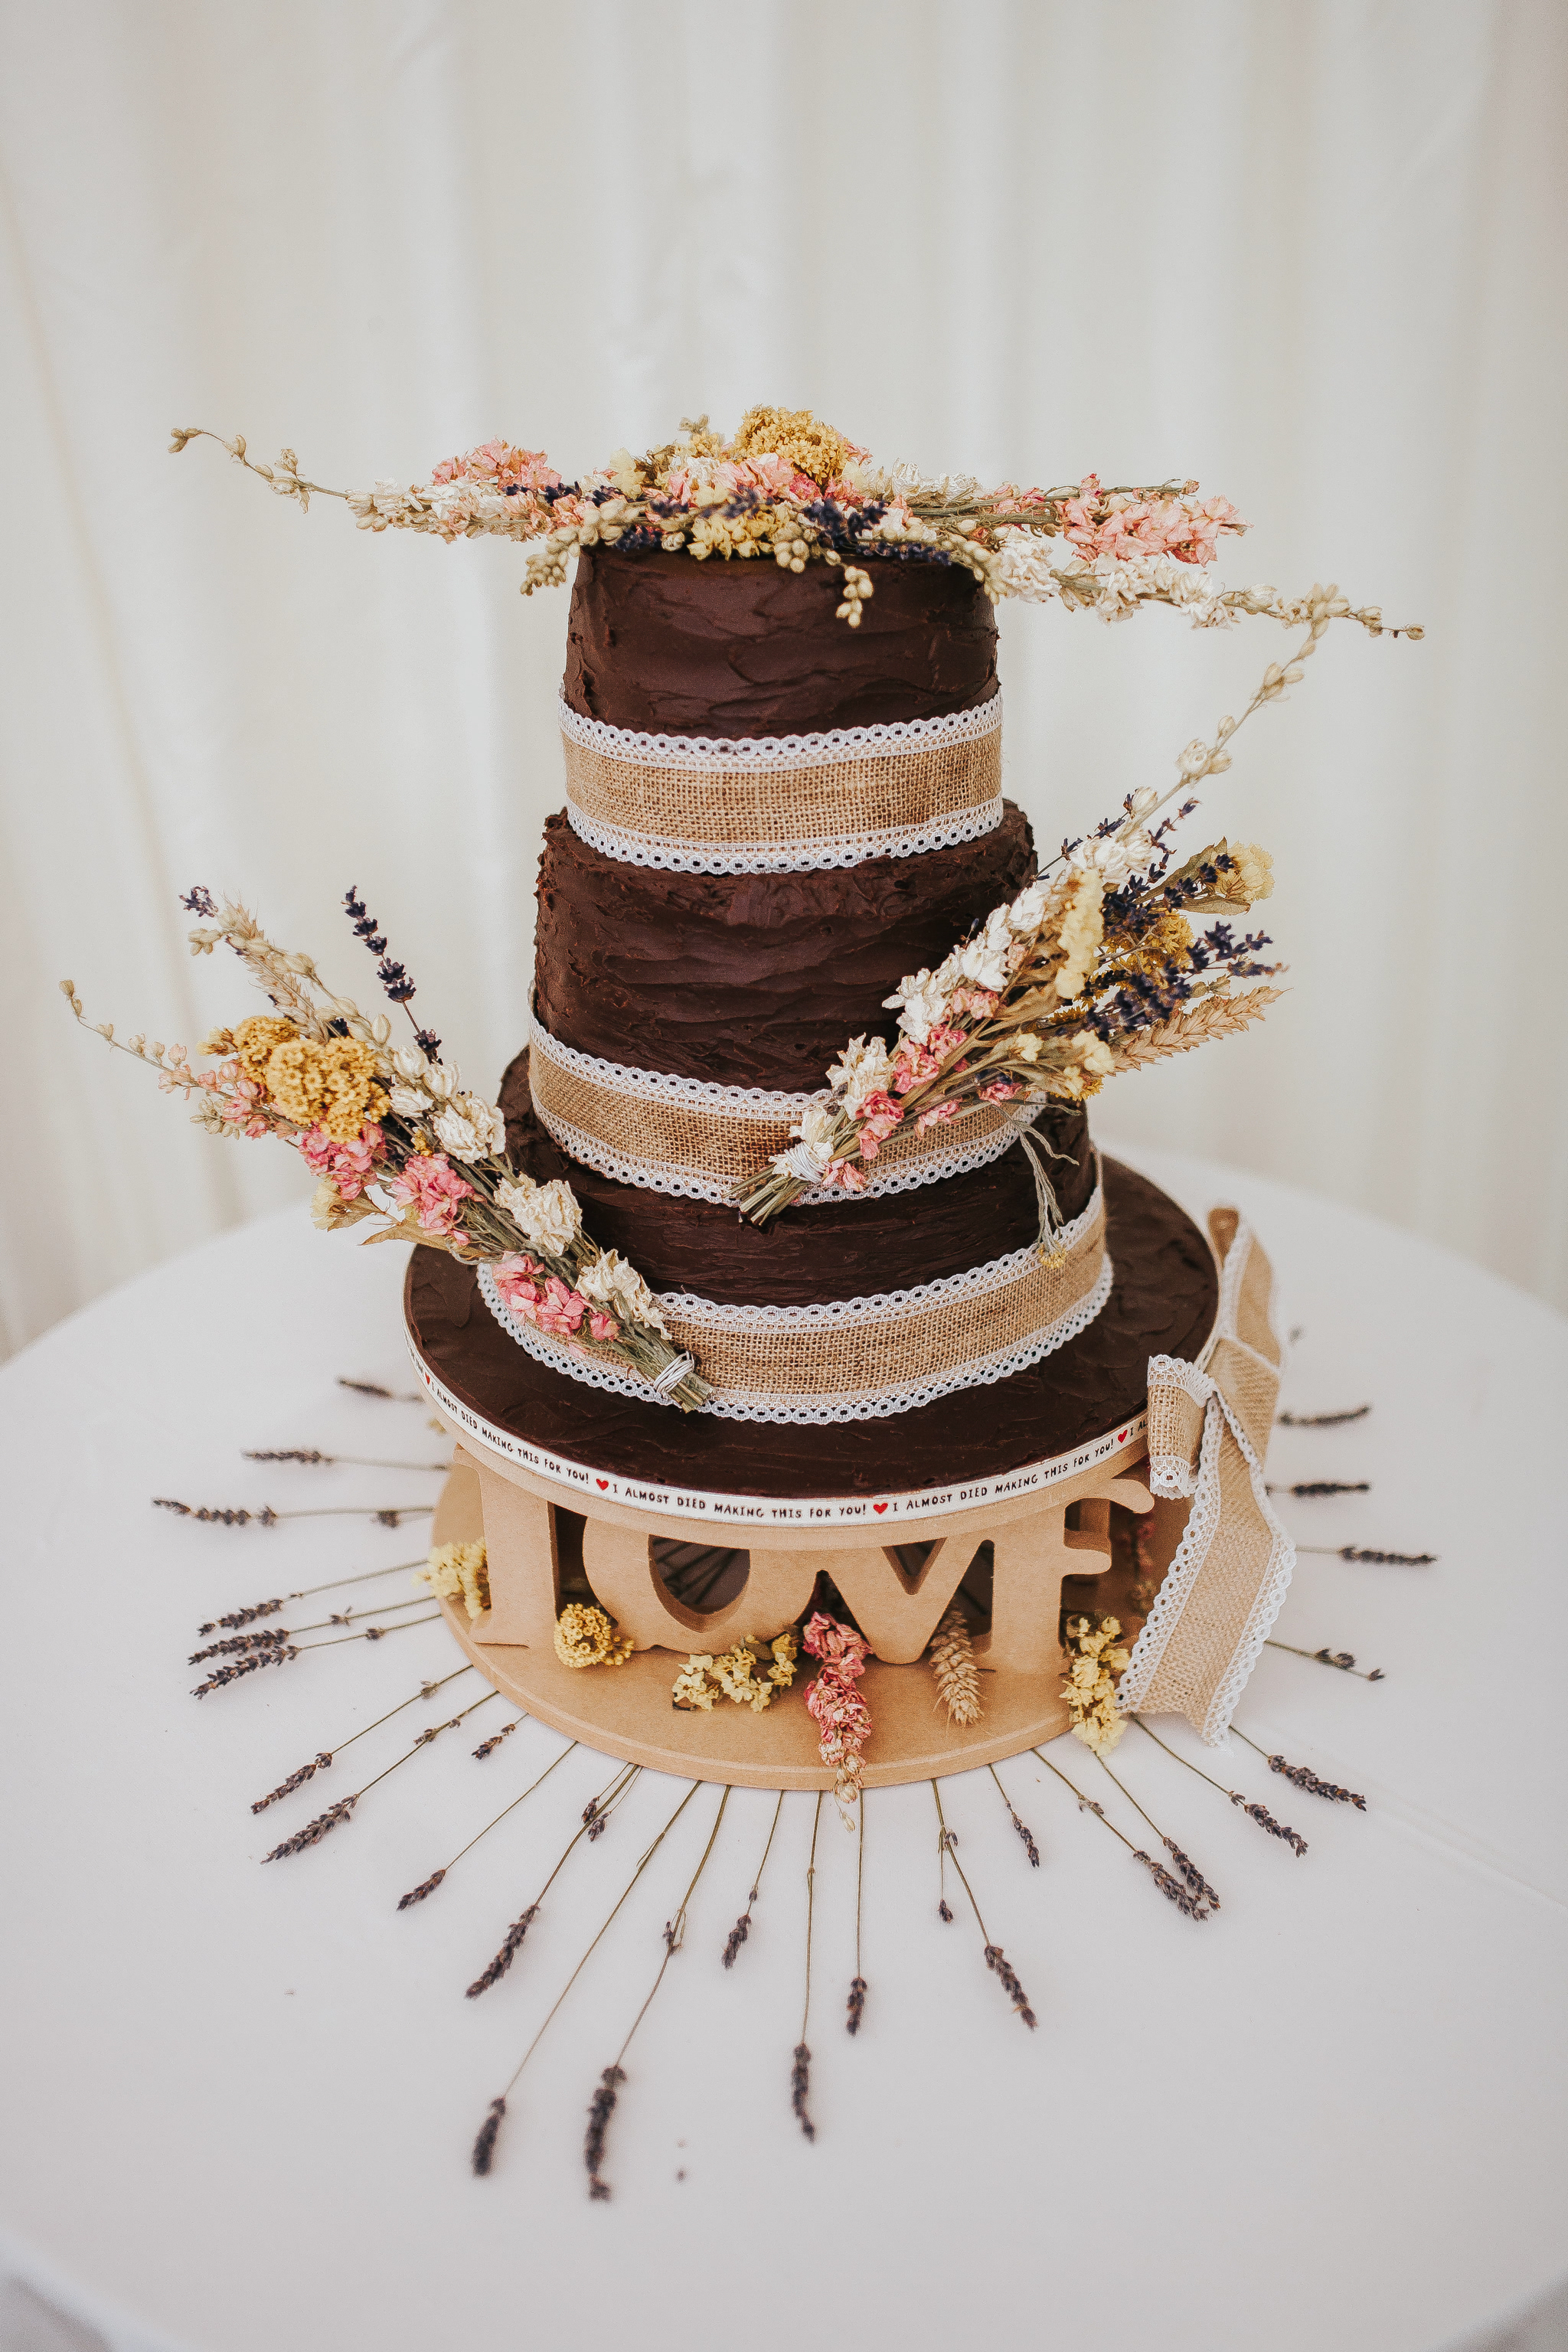 chocolate wedding cake diy rustic flowers dried wheat summer wedding ideas